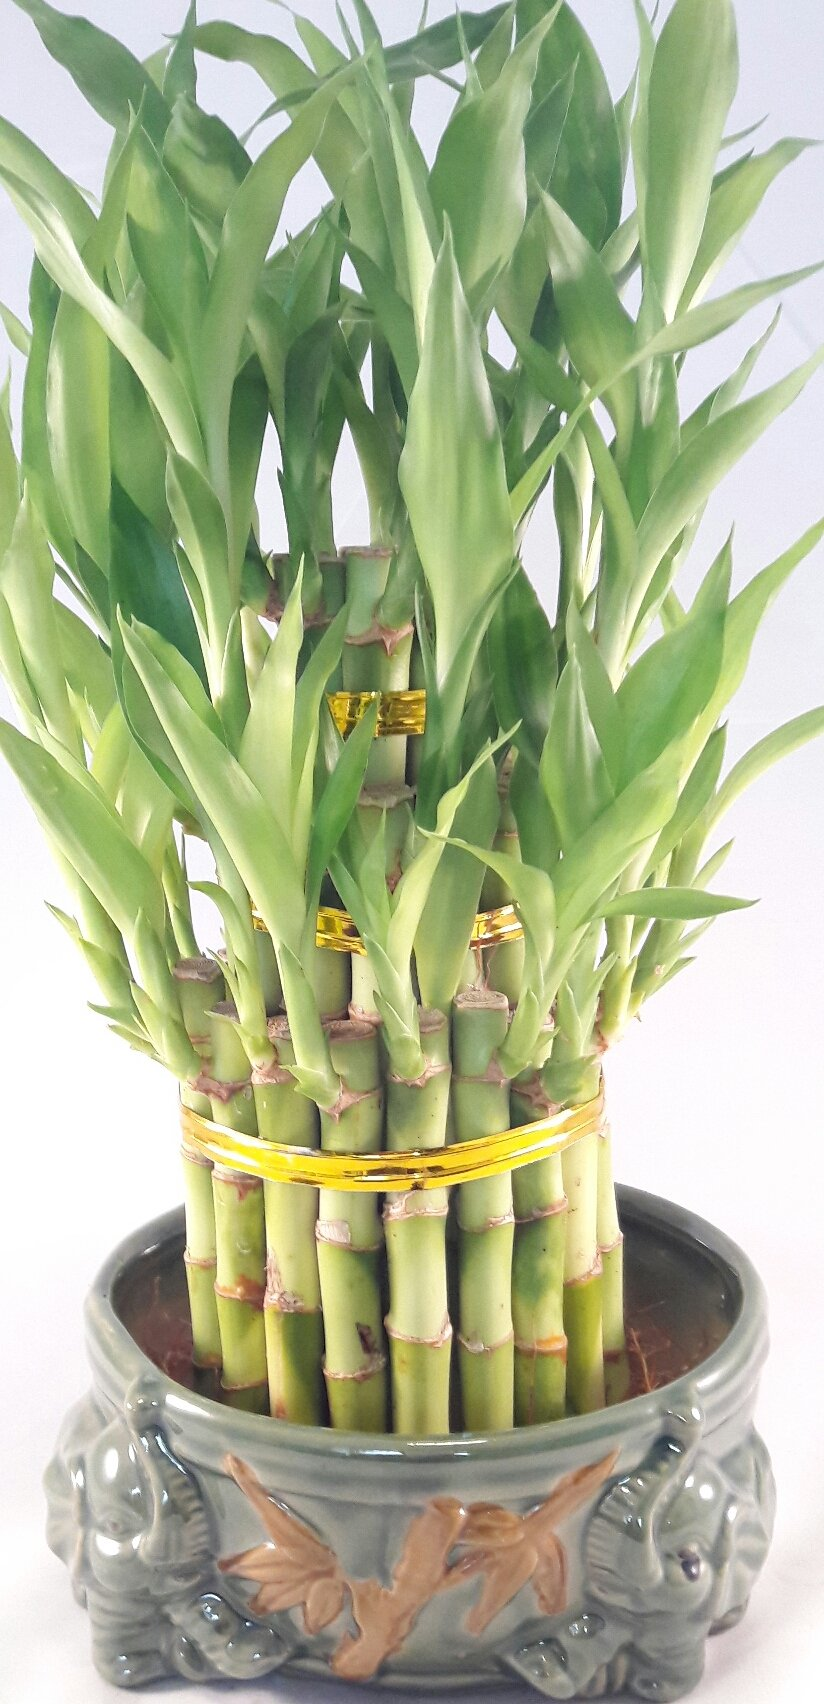 Lucky Bamboo Tower in Decorative Elephant Pot (Twin Elephants) unique from Jmbamboo